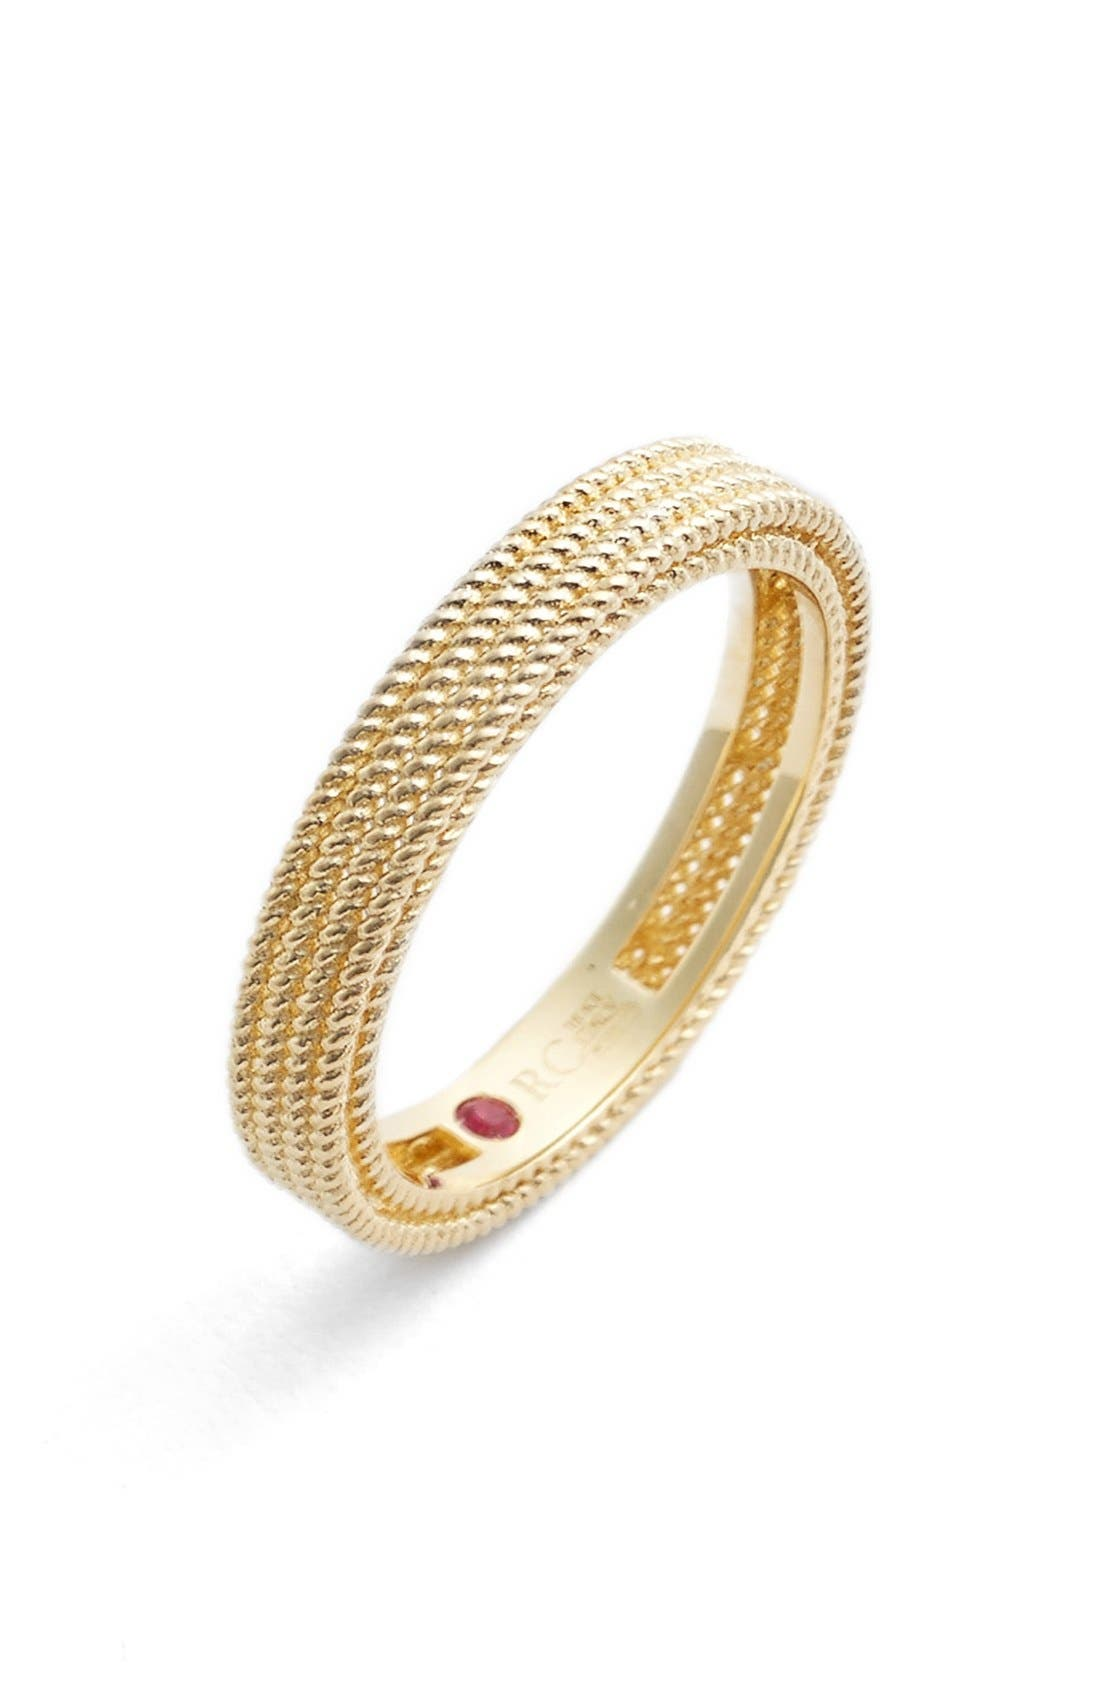 'Symphony - Barocco' Band Ring,                         Main,                         color, Yellow Gold